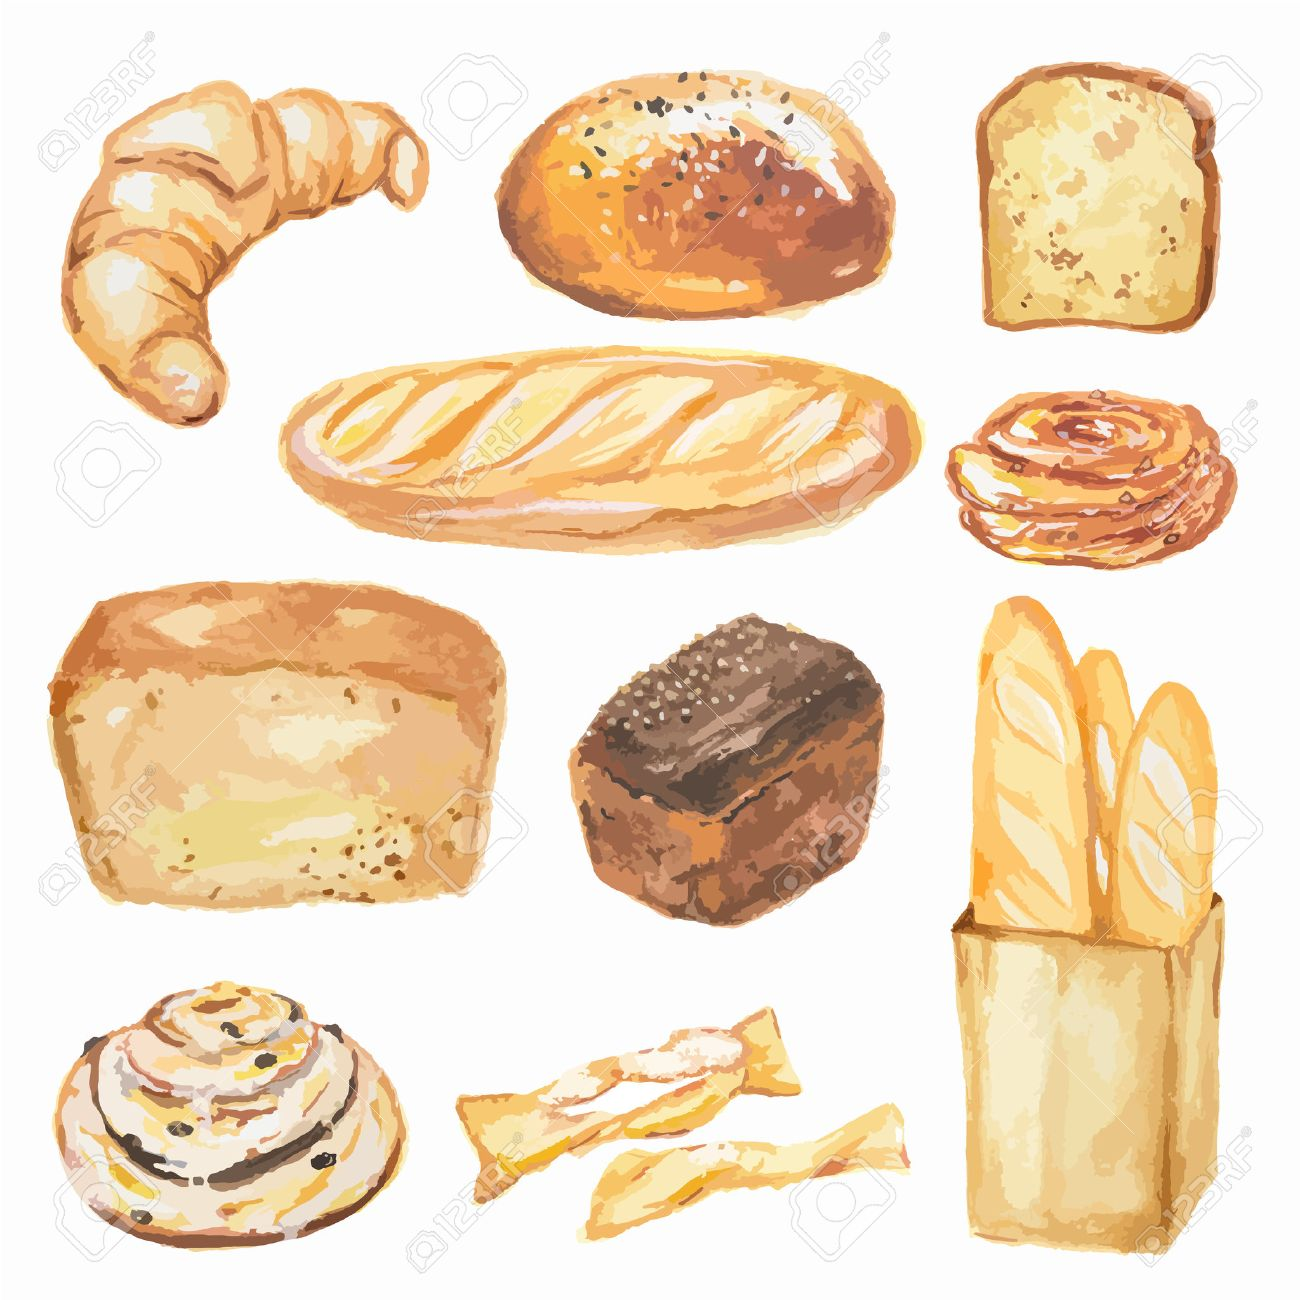 Watercolor Bread Set Different Kinds Of Bread As Baguette Loaf Royalty Free Cliparts Vectors And Stock Illustration Image 60786910